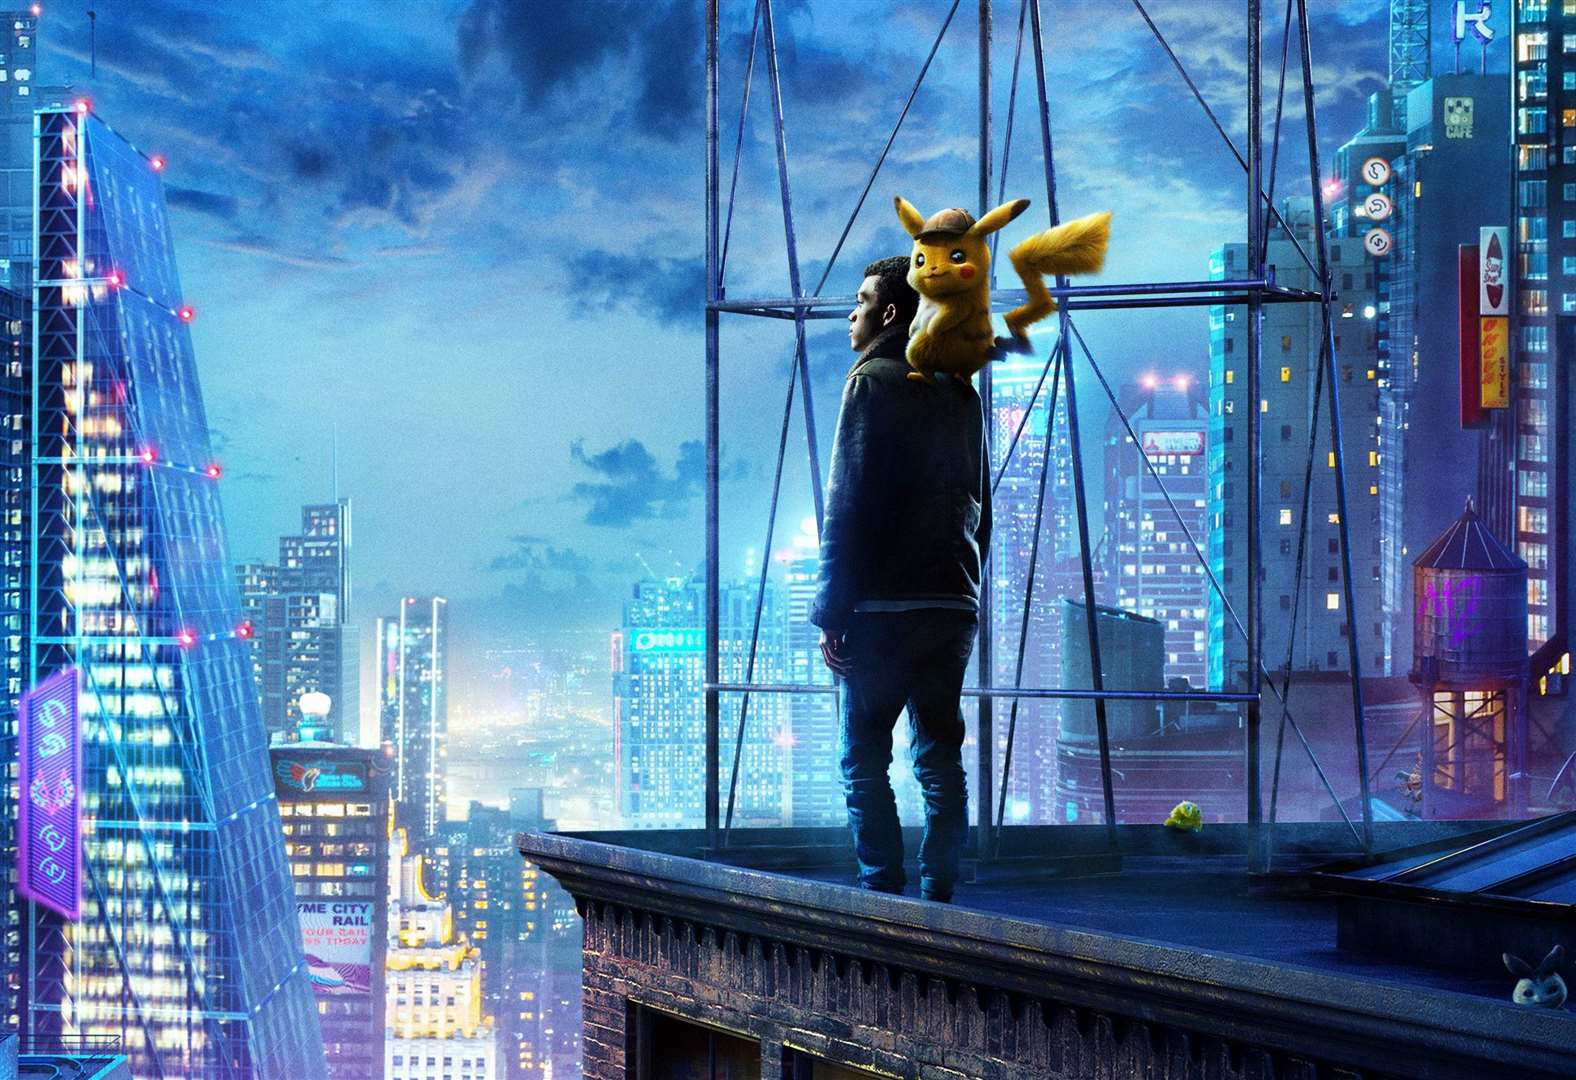 FILM REVIEW: Pokemon Detective Pikachu